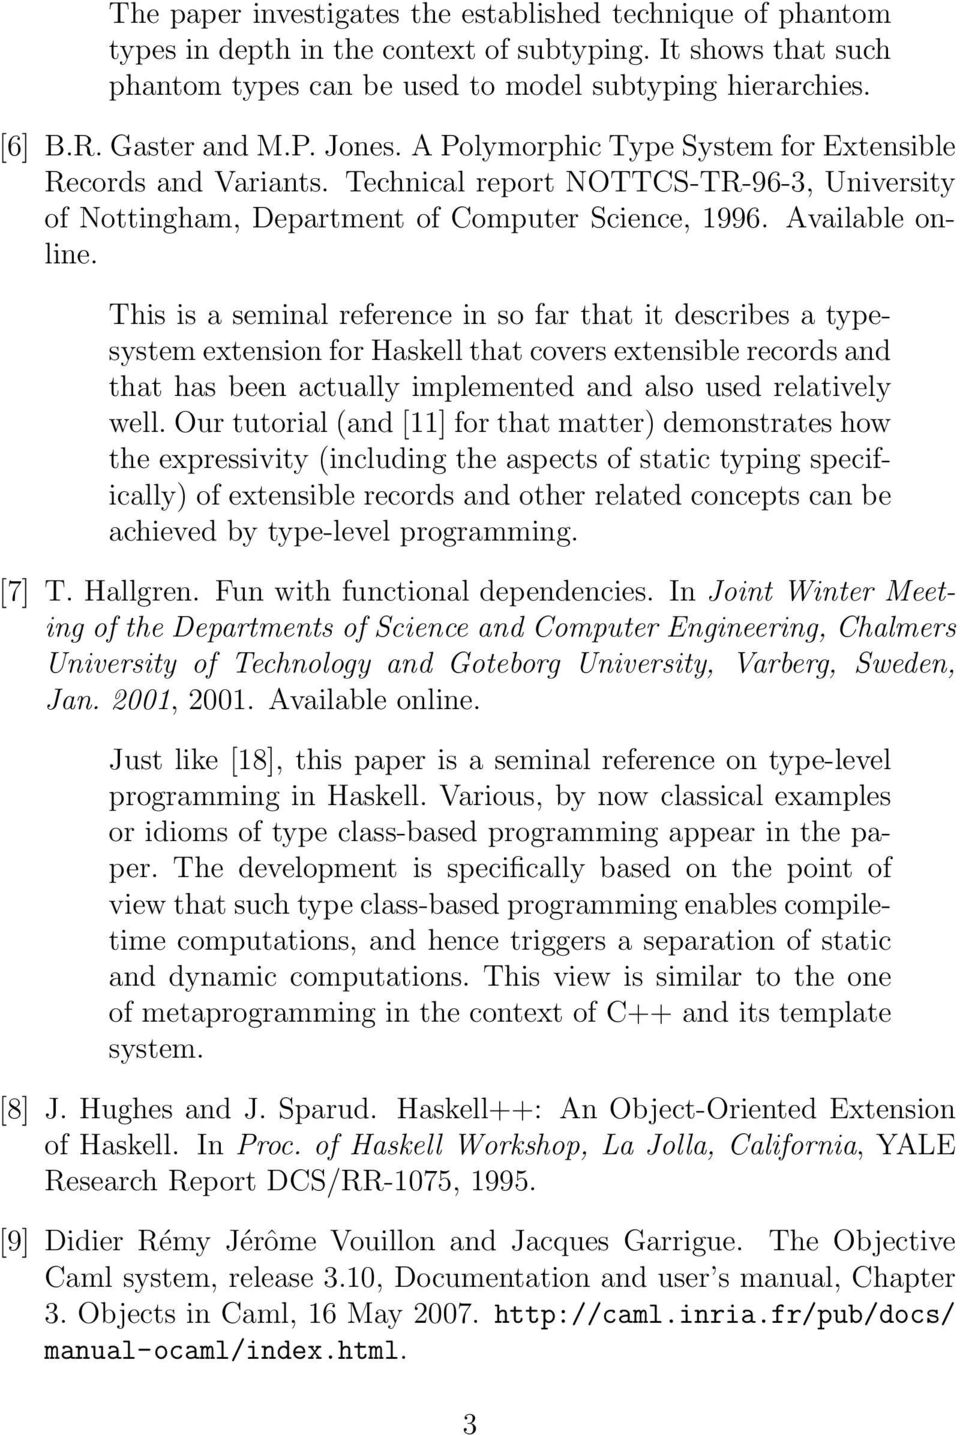 This is a seminal reference in so far that it describes a typesystem extension for Haskell that covers extensible records and that has been actually implemented and also used relatively well.